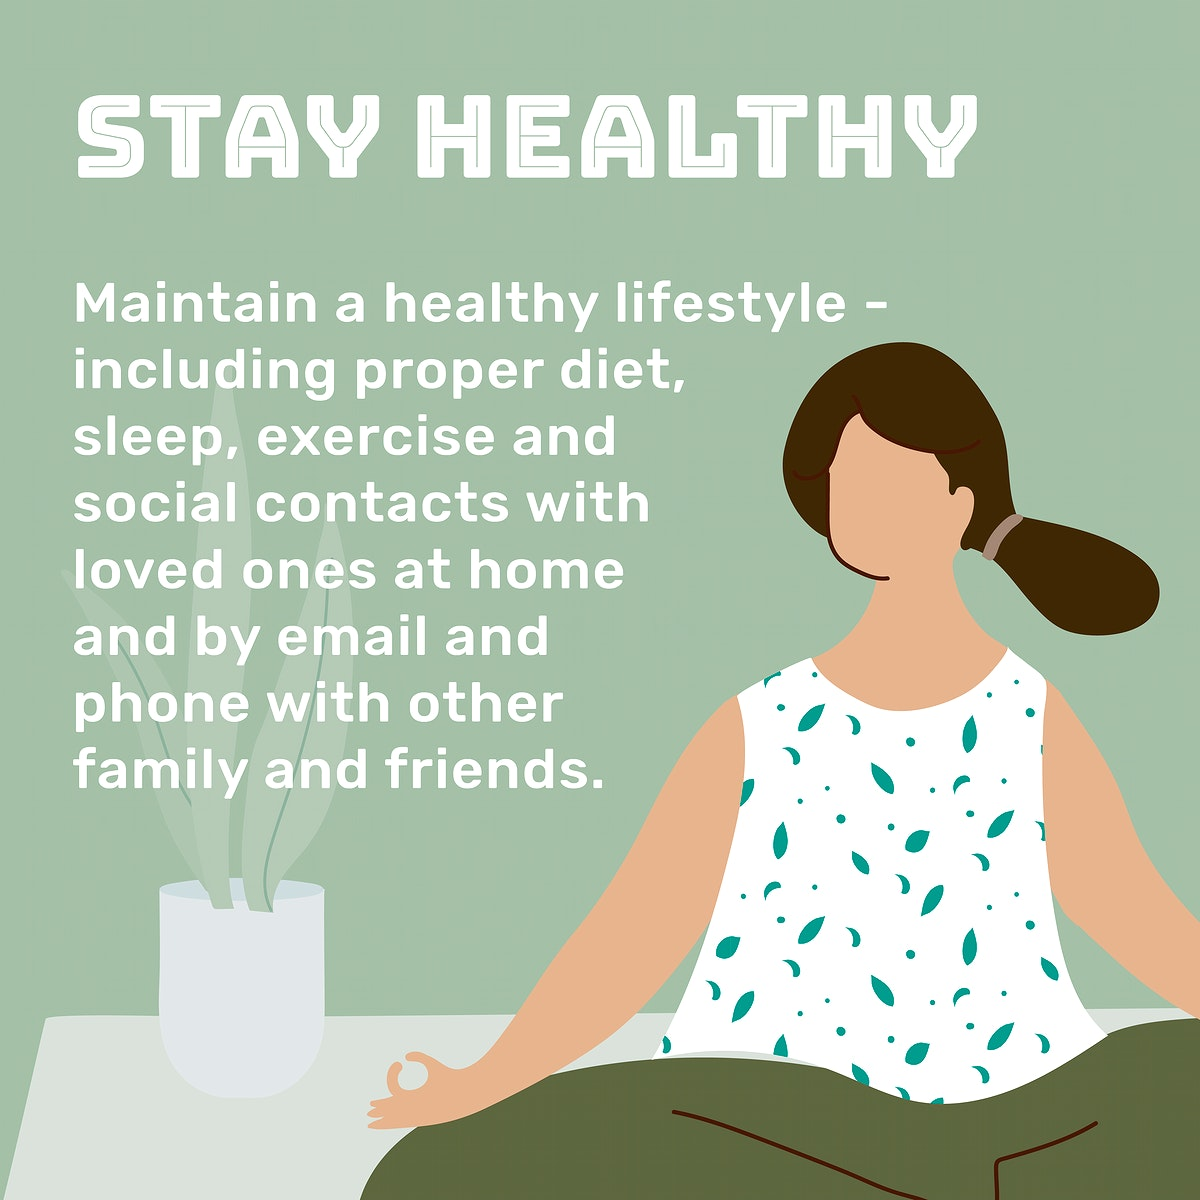 Maintain a healthy lifestyle at home during coronavirus pandemic social template source WHO vector